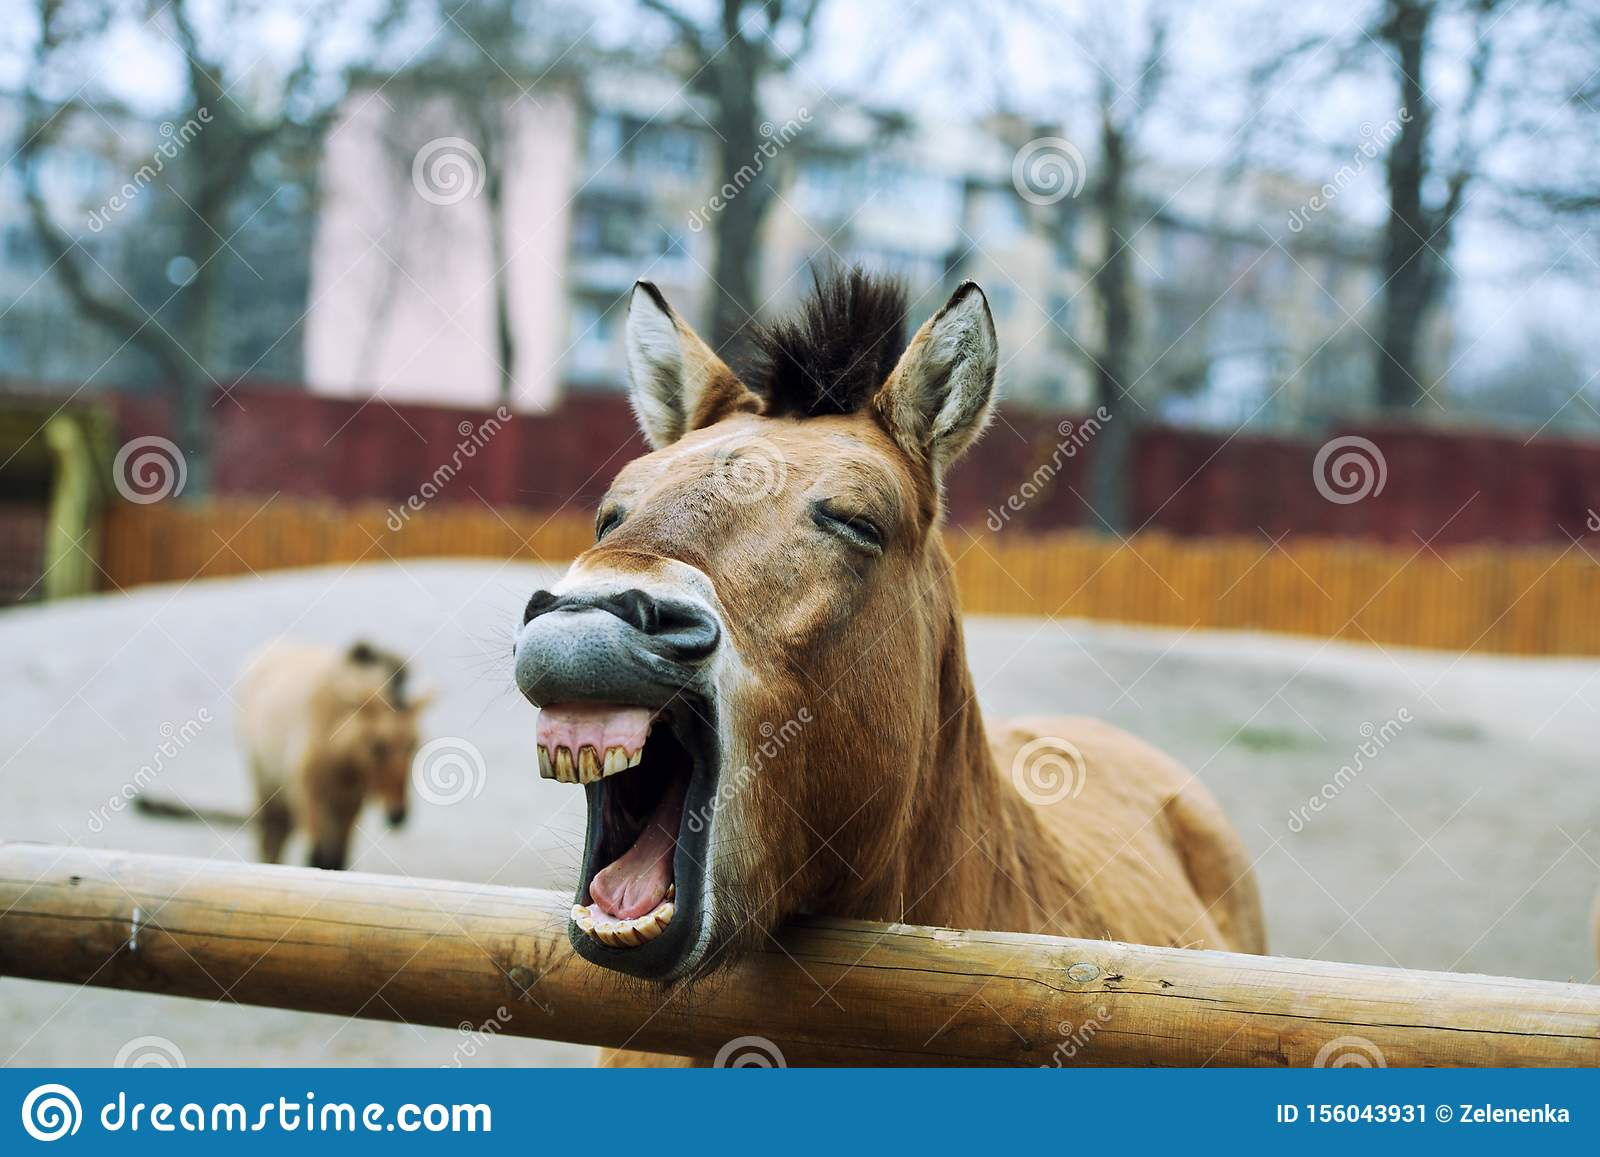 Funny Horse Stock Image Image Of Gelding Animal Funny 156043931